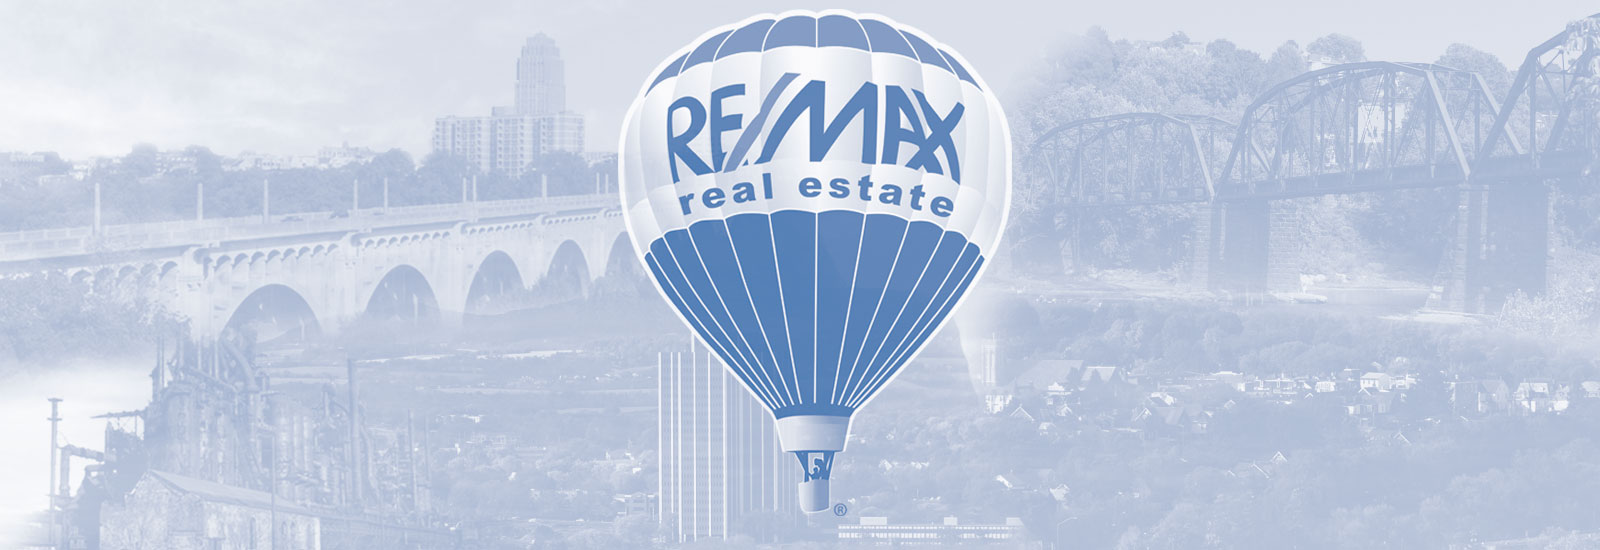 RE/MAX real estate Marketing